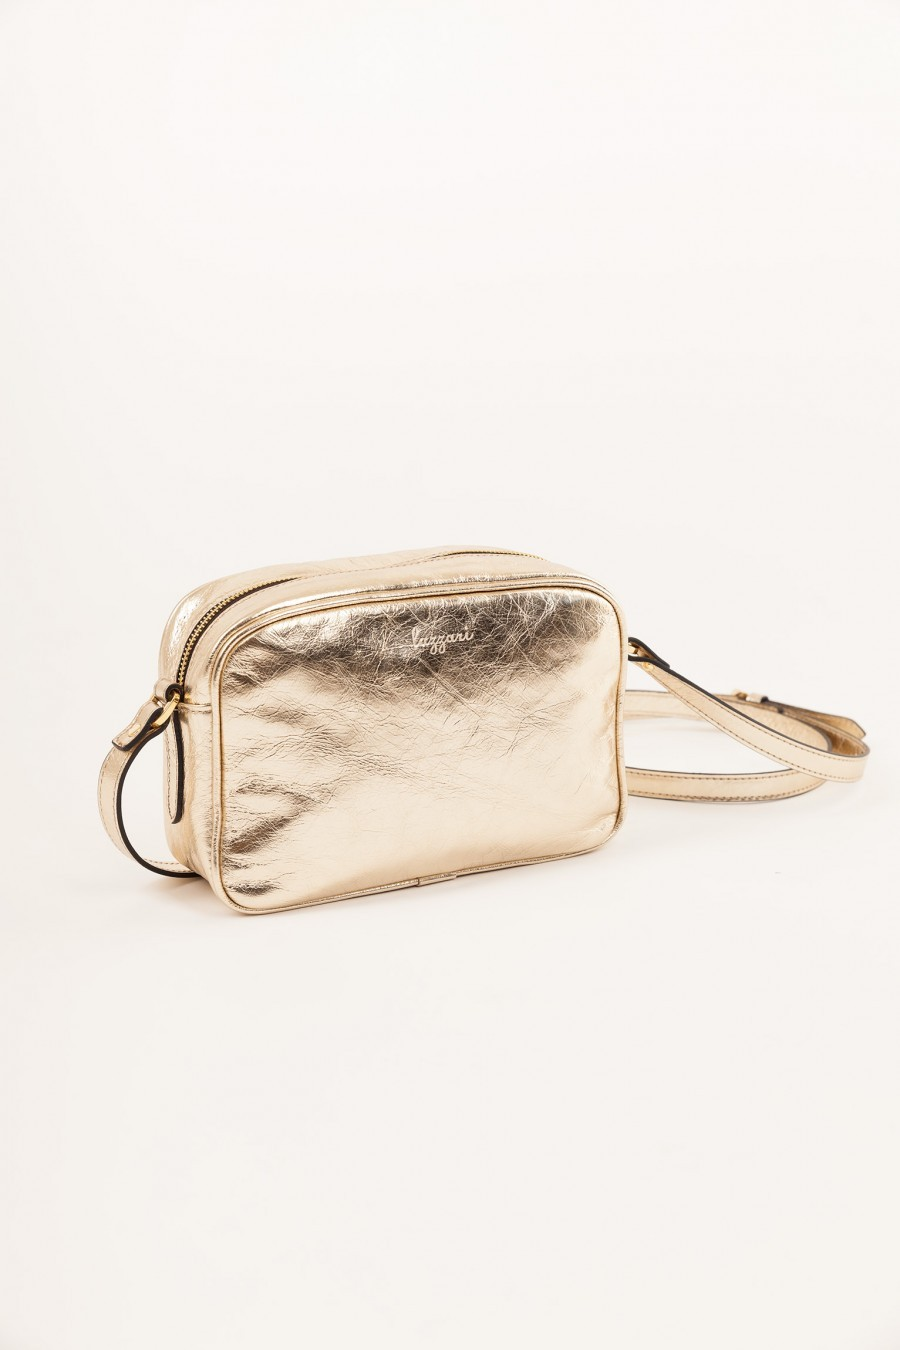 gold bag Lazzari